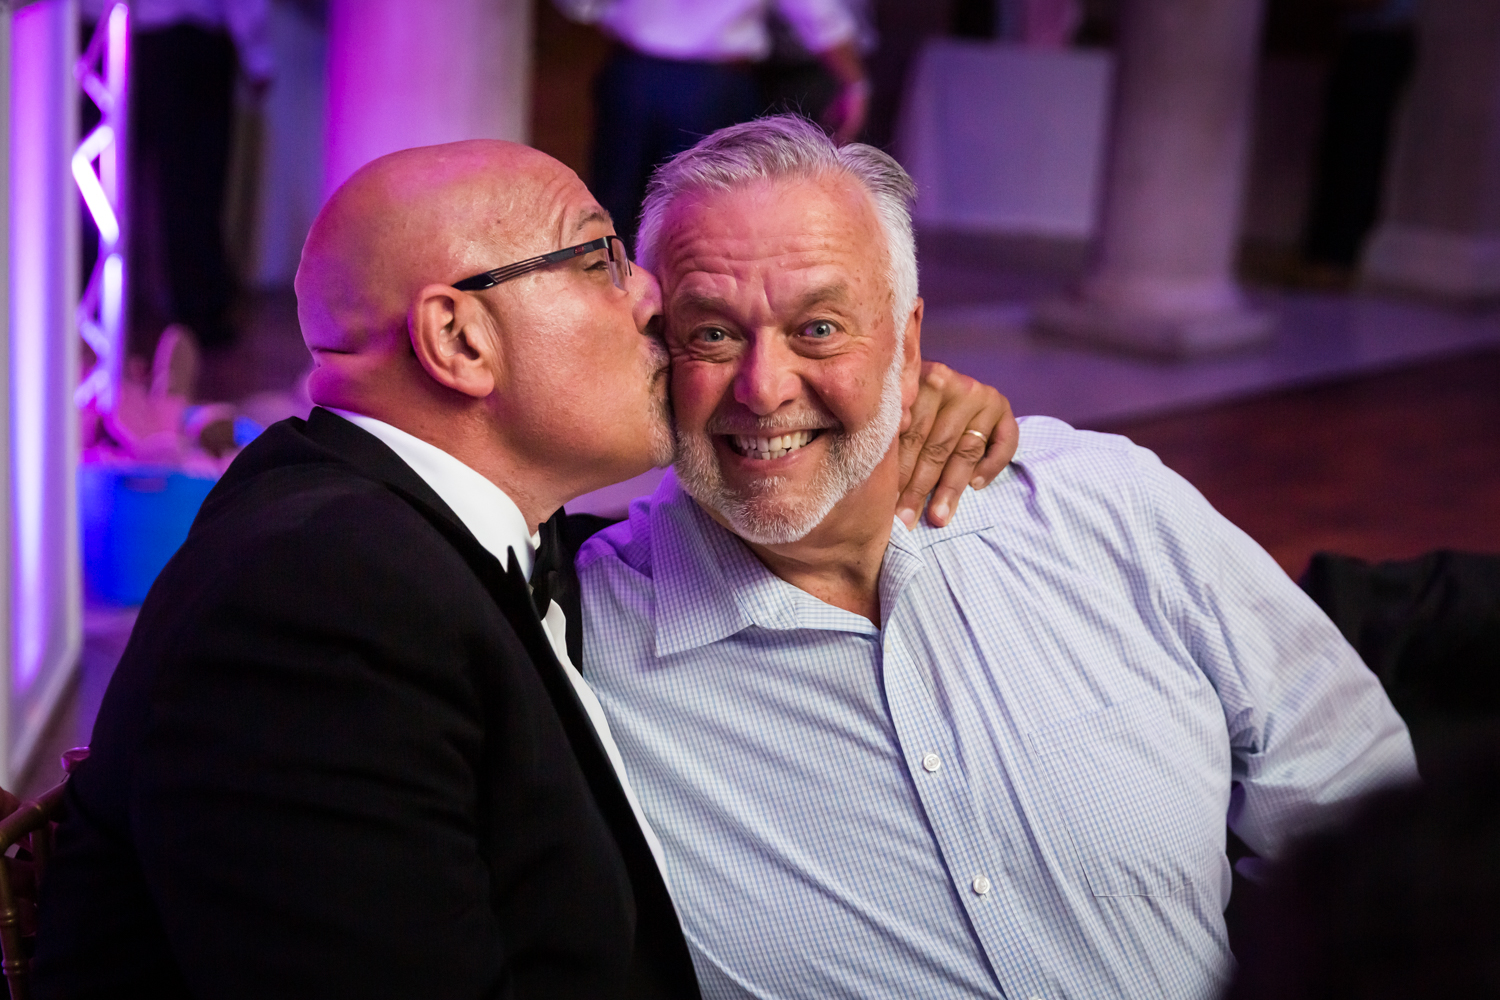 Father kissing guest on cheek for an article on Bronx Zoo wedding venue updates